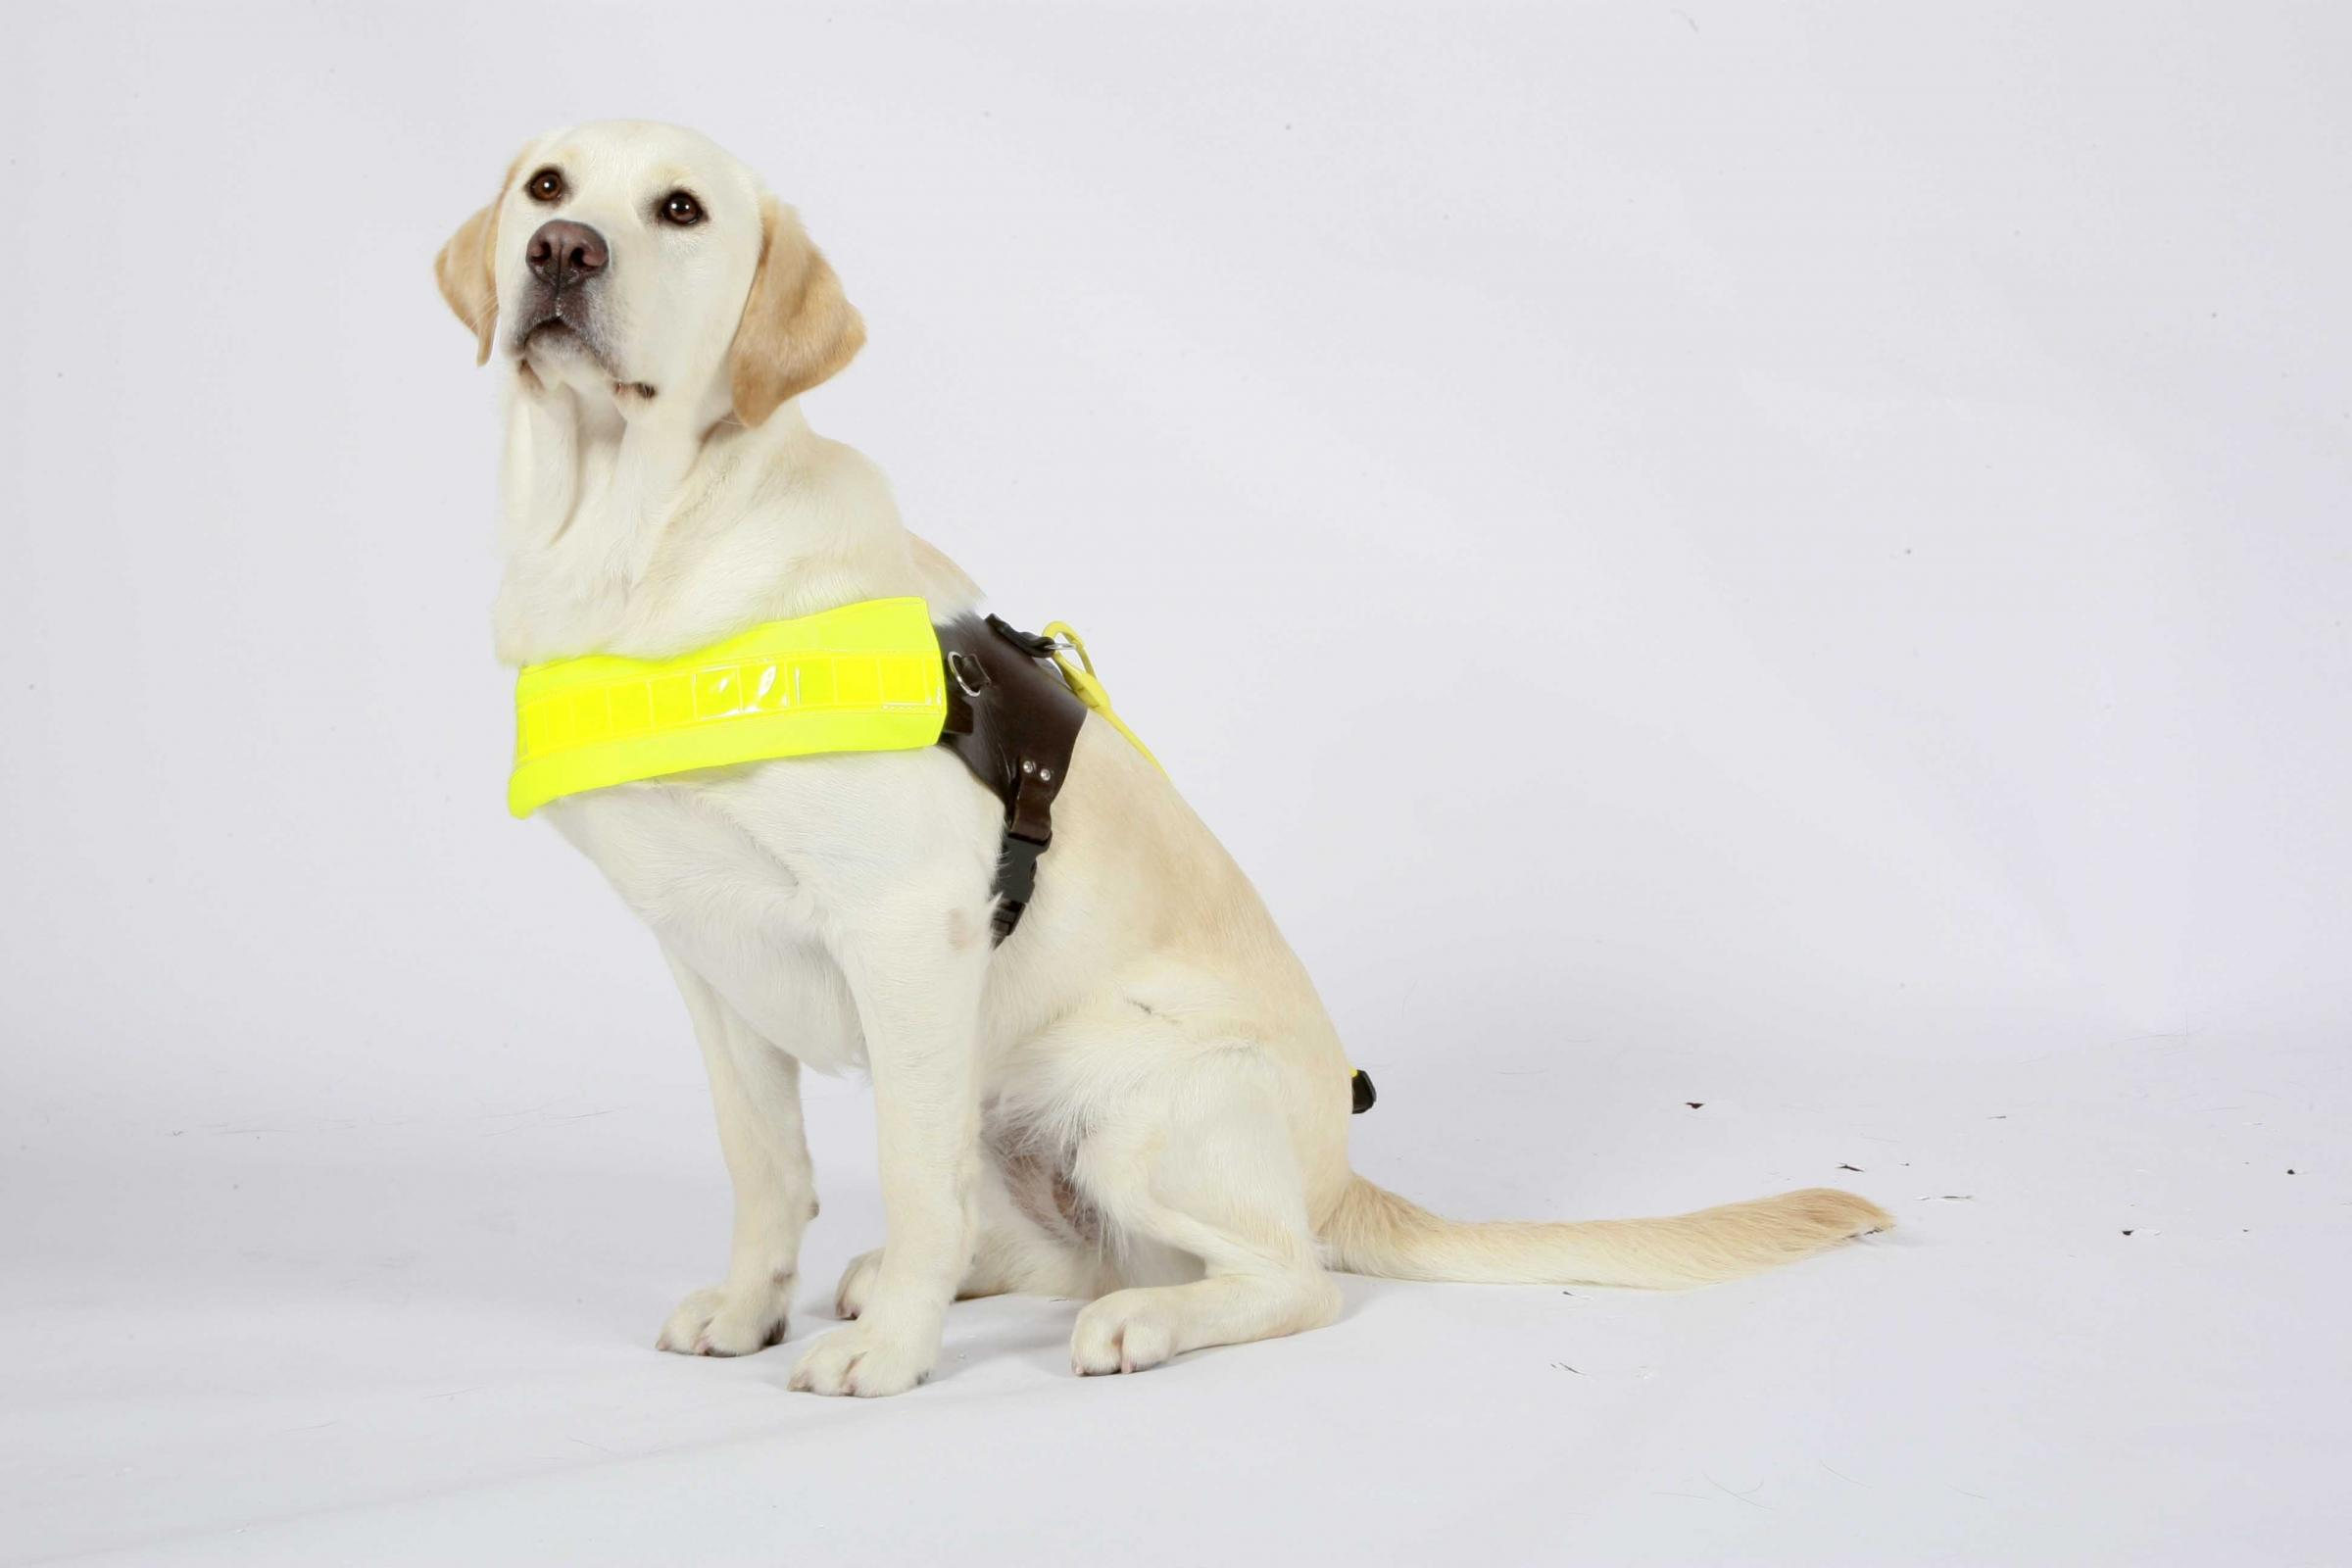 Learn more about guide dogs